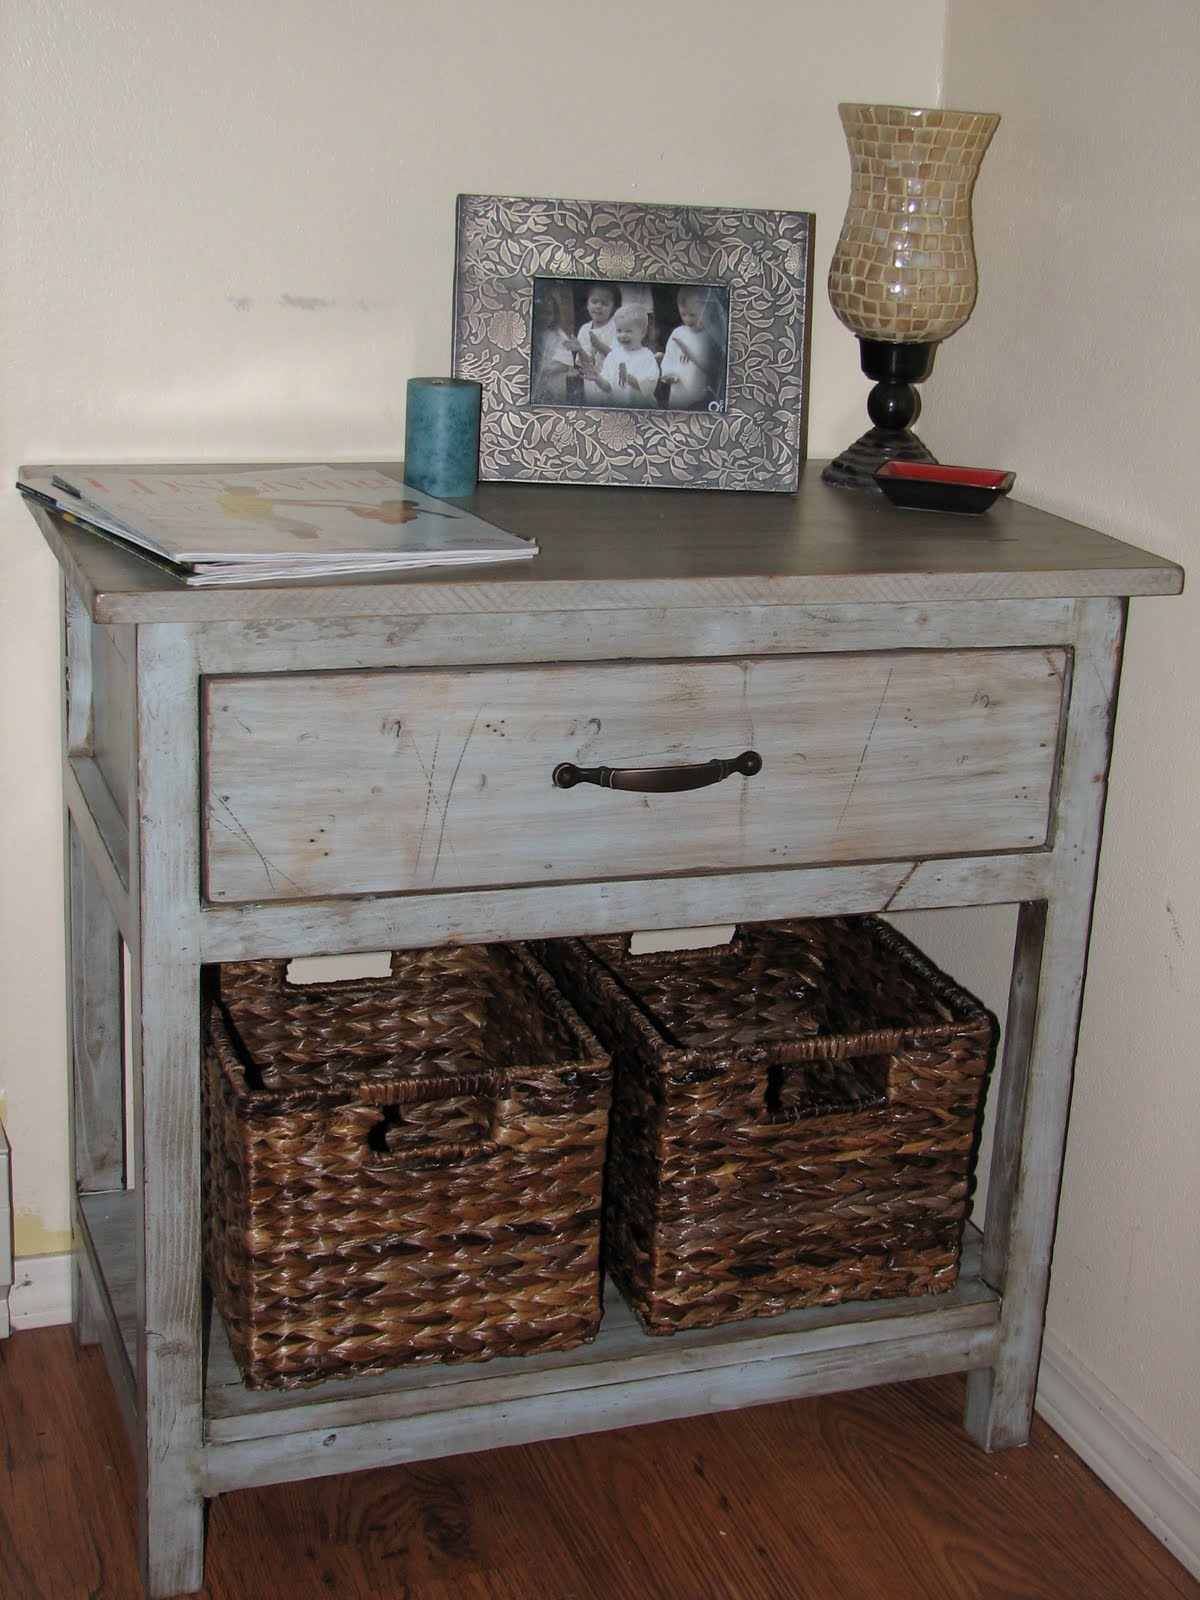 My Bedside Table: The Laundry Will Wait: My Farmhouse Bedside Table